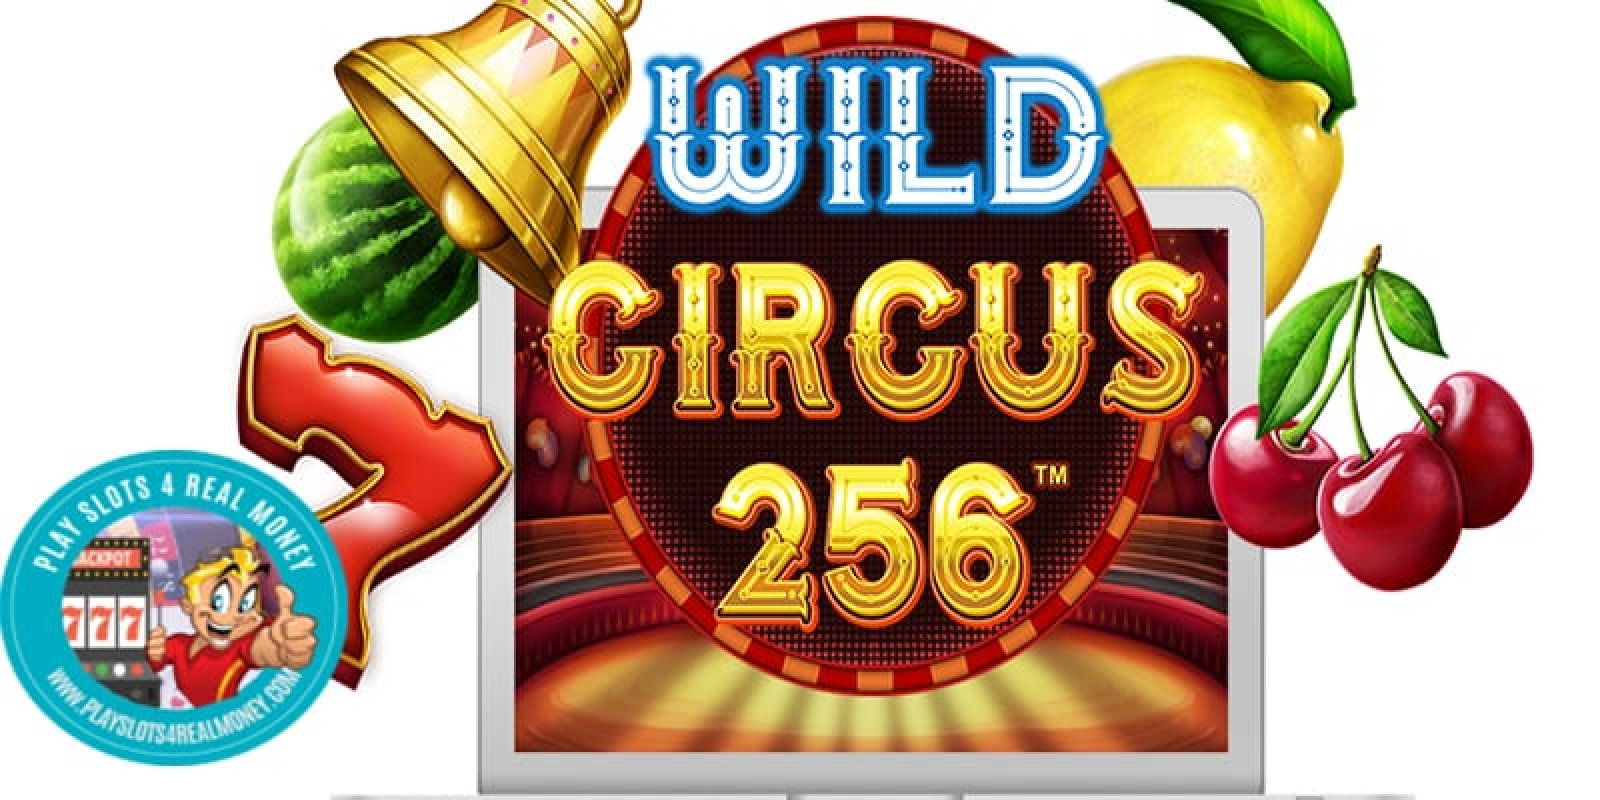 The Wild Circus 256 Online Slot Demo Game by Synot Games